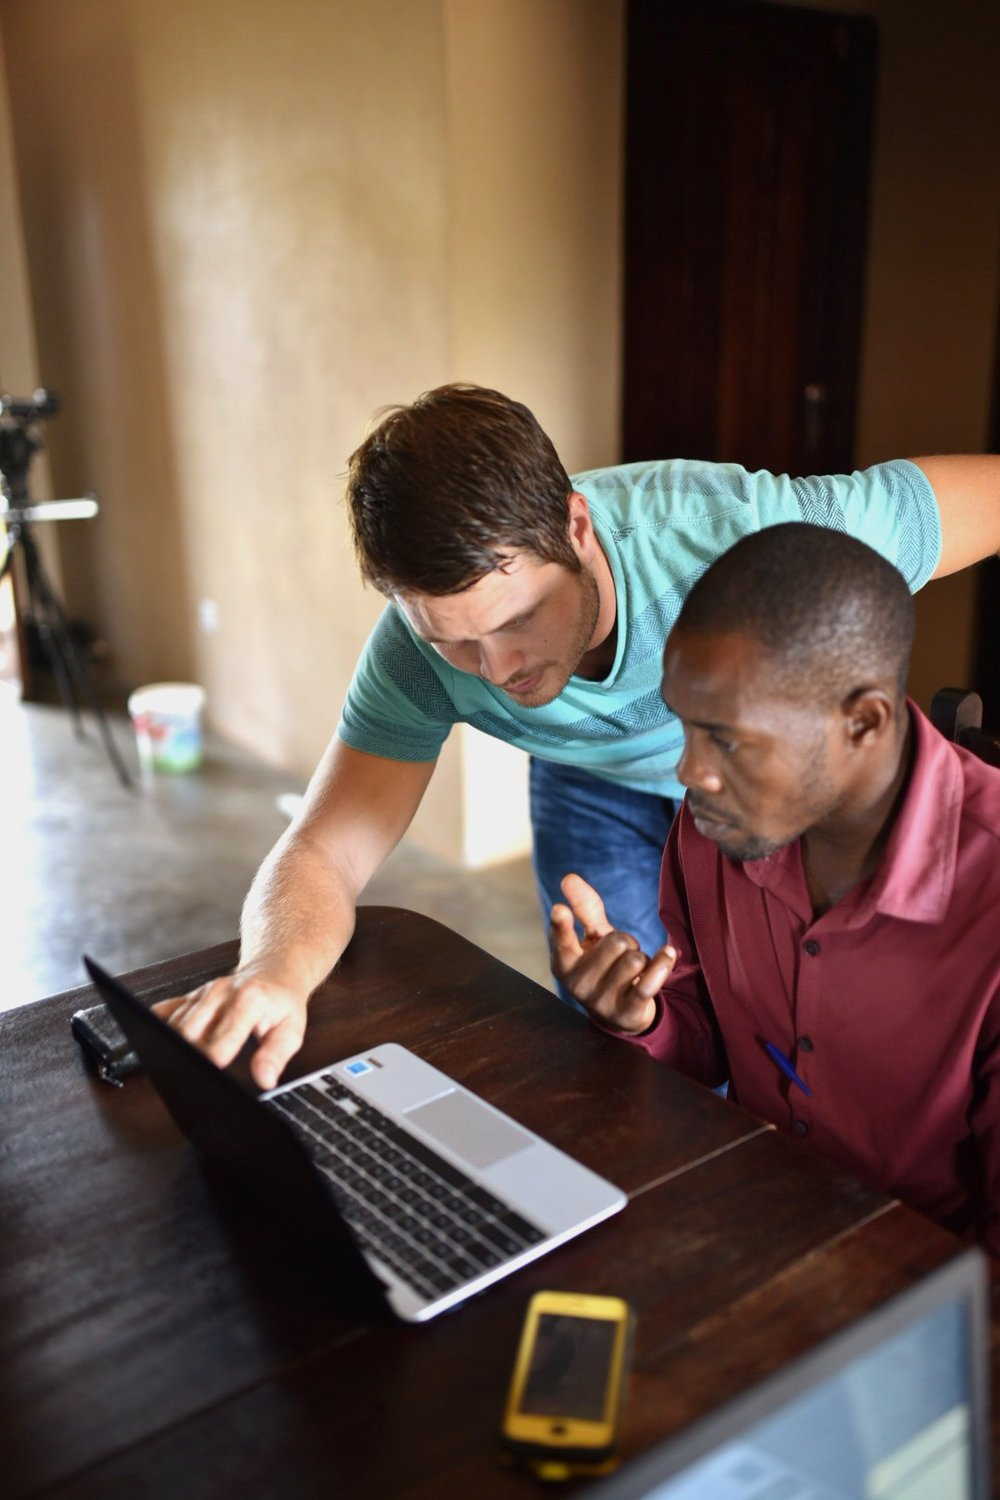 """The computer I received is that it came at a time I really needed it. I can use it for my biblical classes and also for ministerial tasks. The computer laboratory for our students is also expected to achieve much. Students are eager to start learning how to use them and hopefully they are going to be good assets for learning and increasing in the knowledge of God's word. I am thankful for the gift of these computers may God bless you all who contributed towards this."" Francis Lubega, Facilities Manager, G.O.D. East Africa"